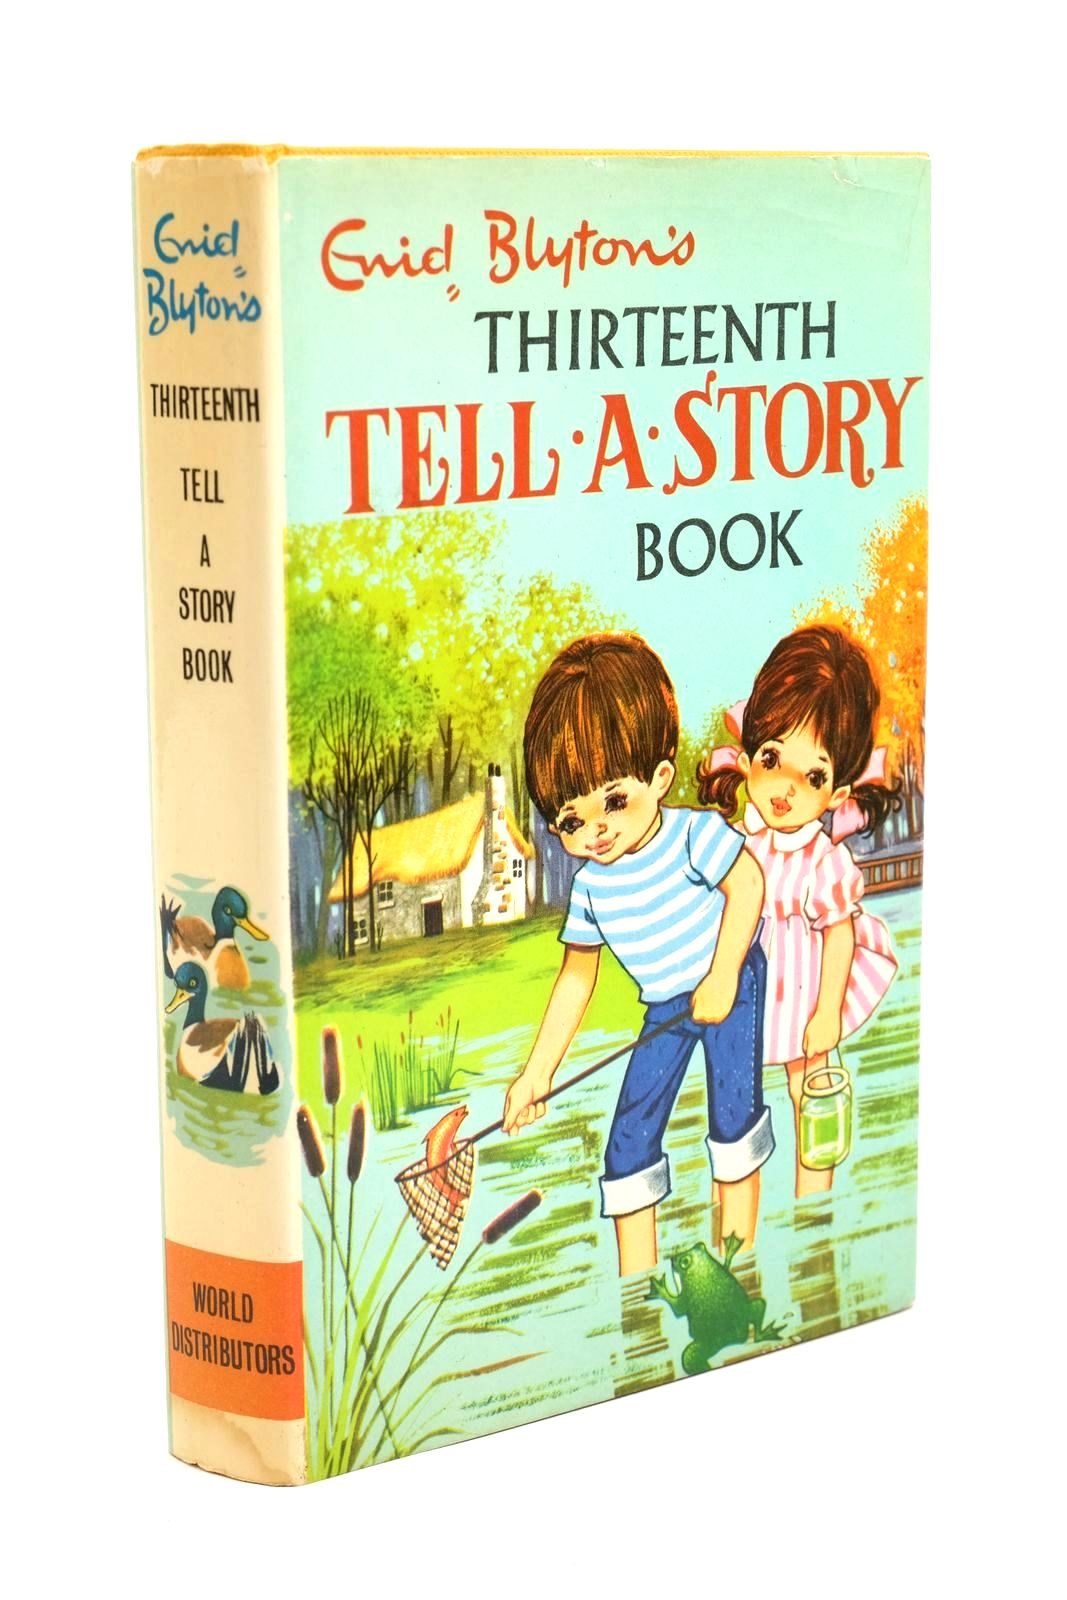 Photo of ENID BLYTON'S THIRTEENTH TELL-A-STORY BOOK written by Blyton, Enid published by World Distributors Ltd. (STOCK CODE: 1321094)  for sale by Stella & Rose's Books